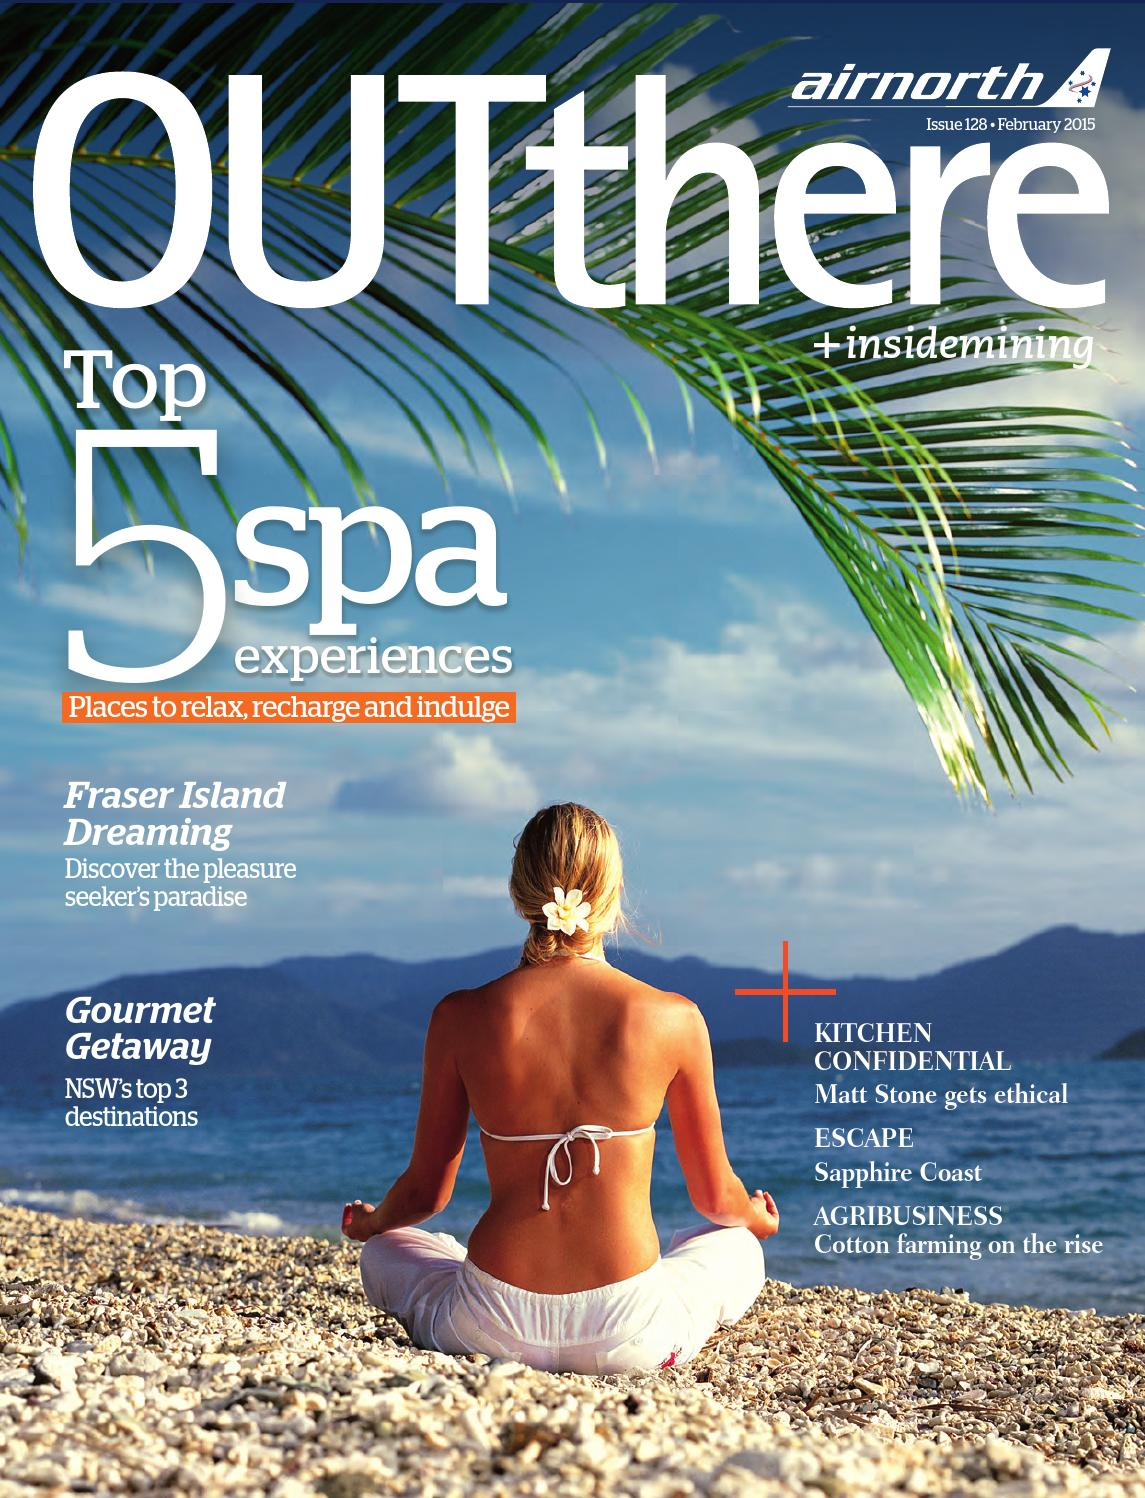 OUTthere Airnorth February 2015 by Edge In-flight Magazines - issuu